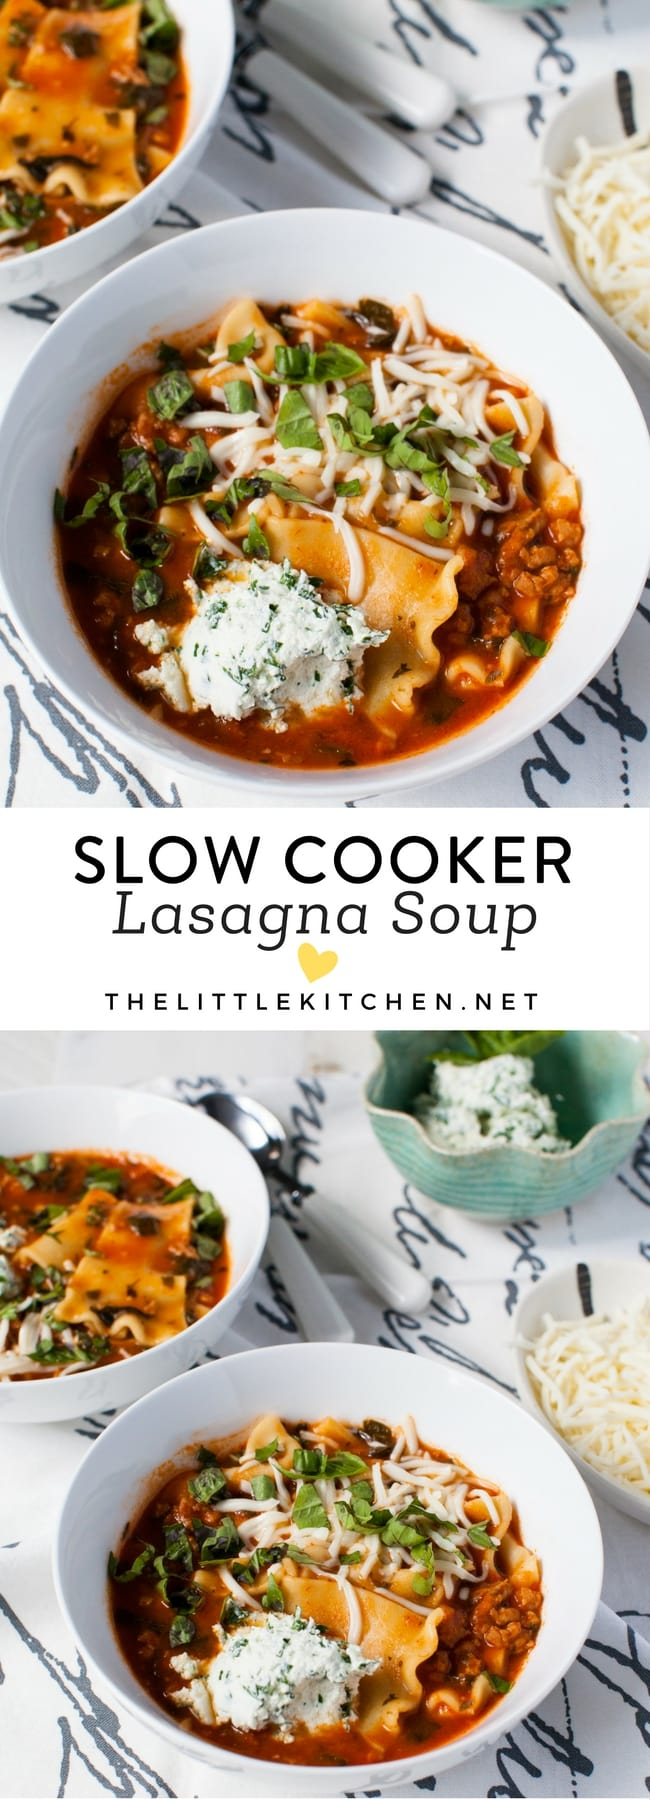 Slow Cooker Lasagna Soup from thelittlekitchen.net